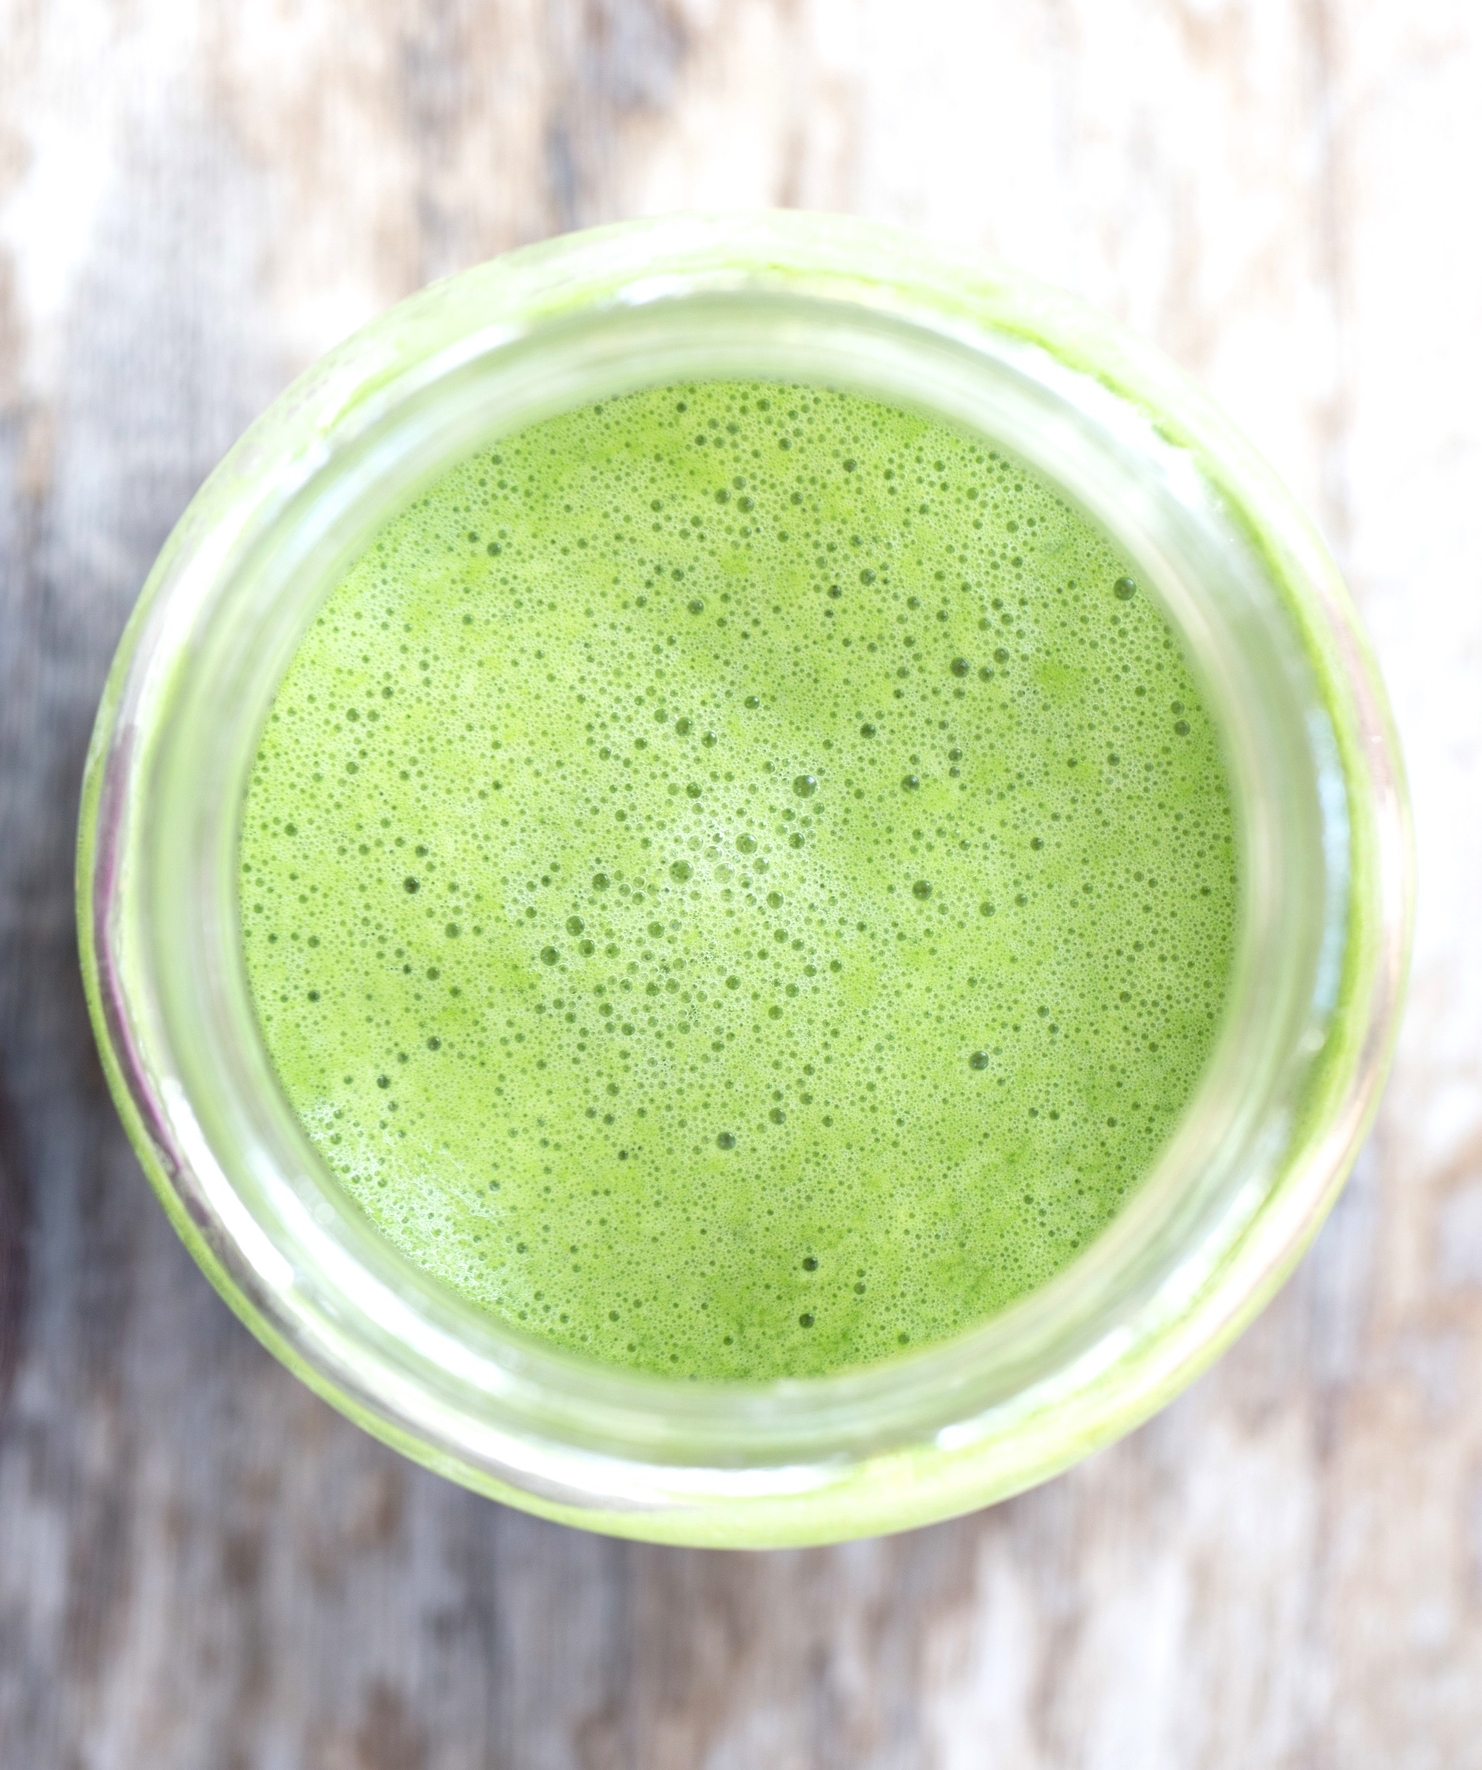 """14-day Metabolic Detox - £141.25/1410DKKThis 14 day detox programme has been designed to increase energy, improve cellular health and function, help weight loss, improve healthy ageing, sleep and give the liver a kick start thus reducing toxic load.What is involved?The programme uses a specific supplement regime and targeted food plan, which focuses on cutting out alcohol, caffeine, dairy and gluten.Prior to the programme commencing you will receive the required 5 supplements and an information pack that includes - An 'allowed foods' food list, recipes, menu planners, workbook, supplements, shopping list and a list of helpful FAQ's.This is not another calorie controlled diet but one that incorporates the right foods. This gives you a chance to develop a new relationship with food and include ingredients you may not normally use while experimenting with new recipes.For deeper a cleanse add """"The Detox Box"""" (below)which will include coconut oil, body brush, Epsom bath salts, fluoride free toothpaste and Neal's yard cosmetics."""